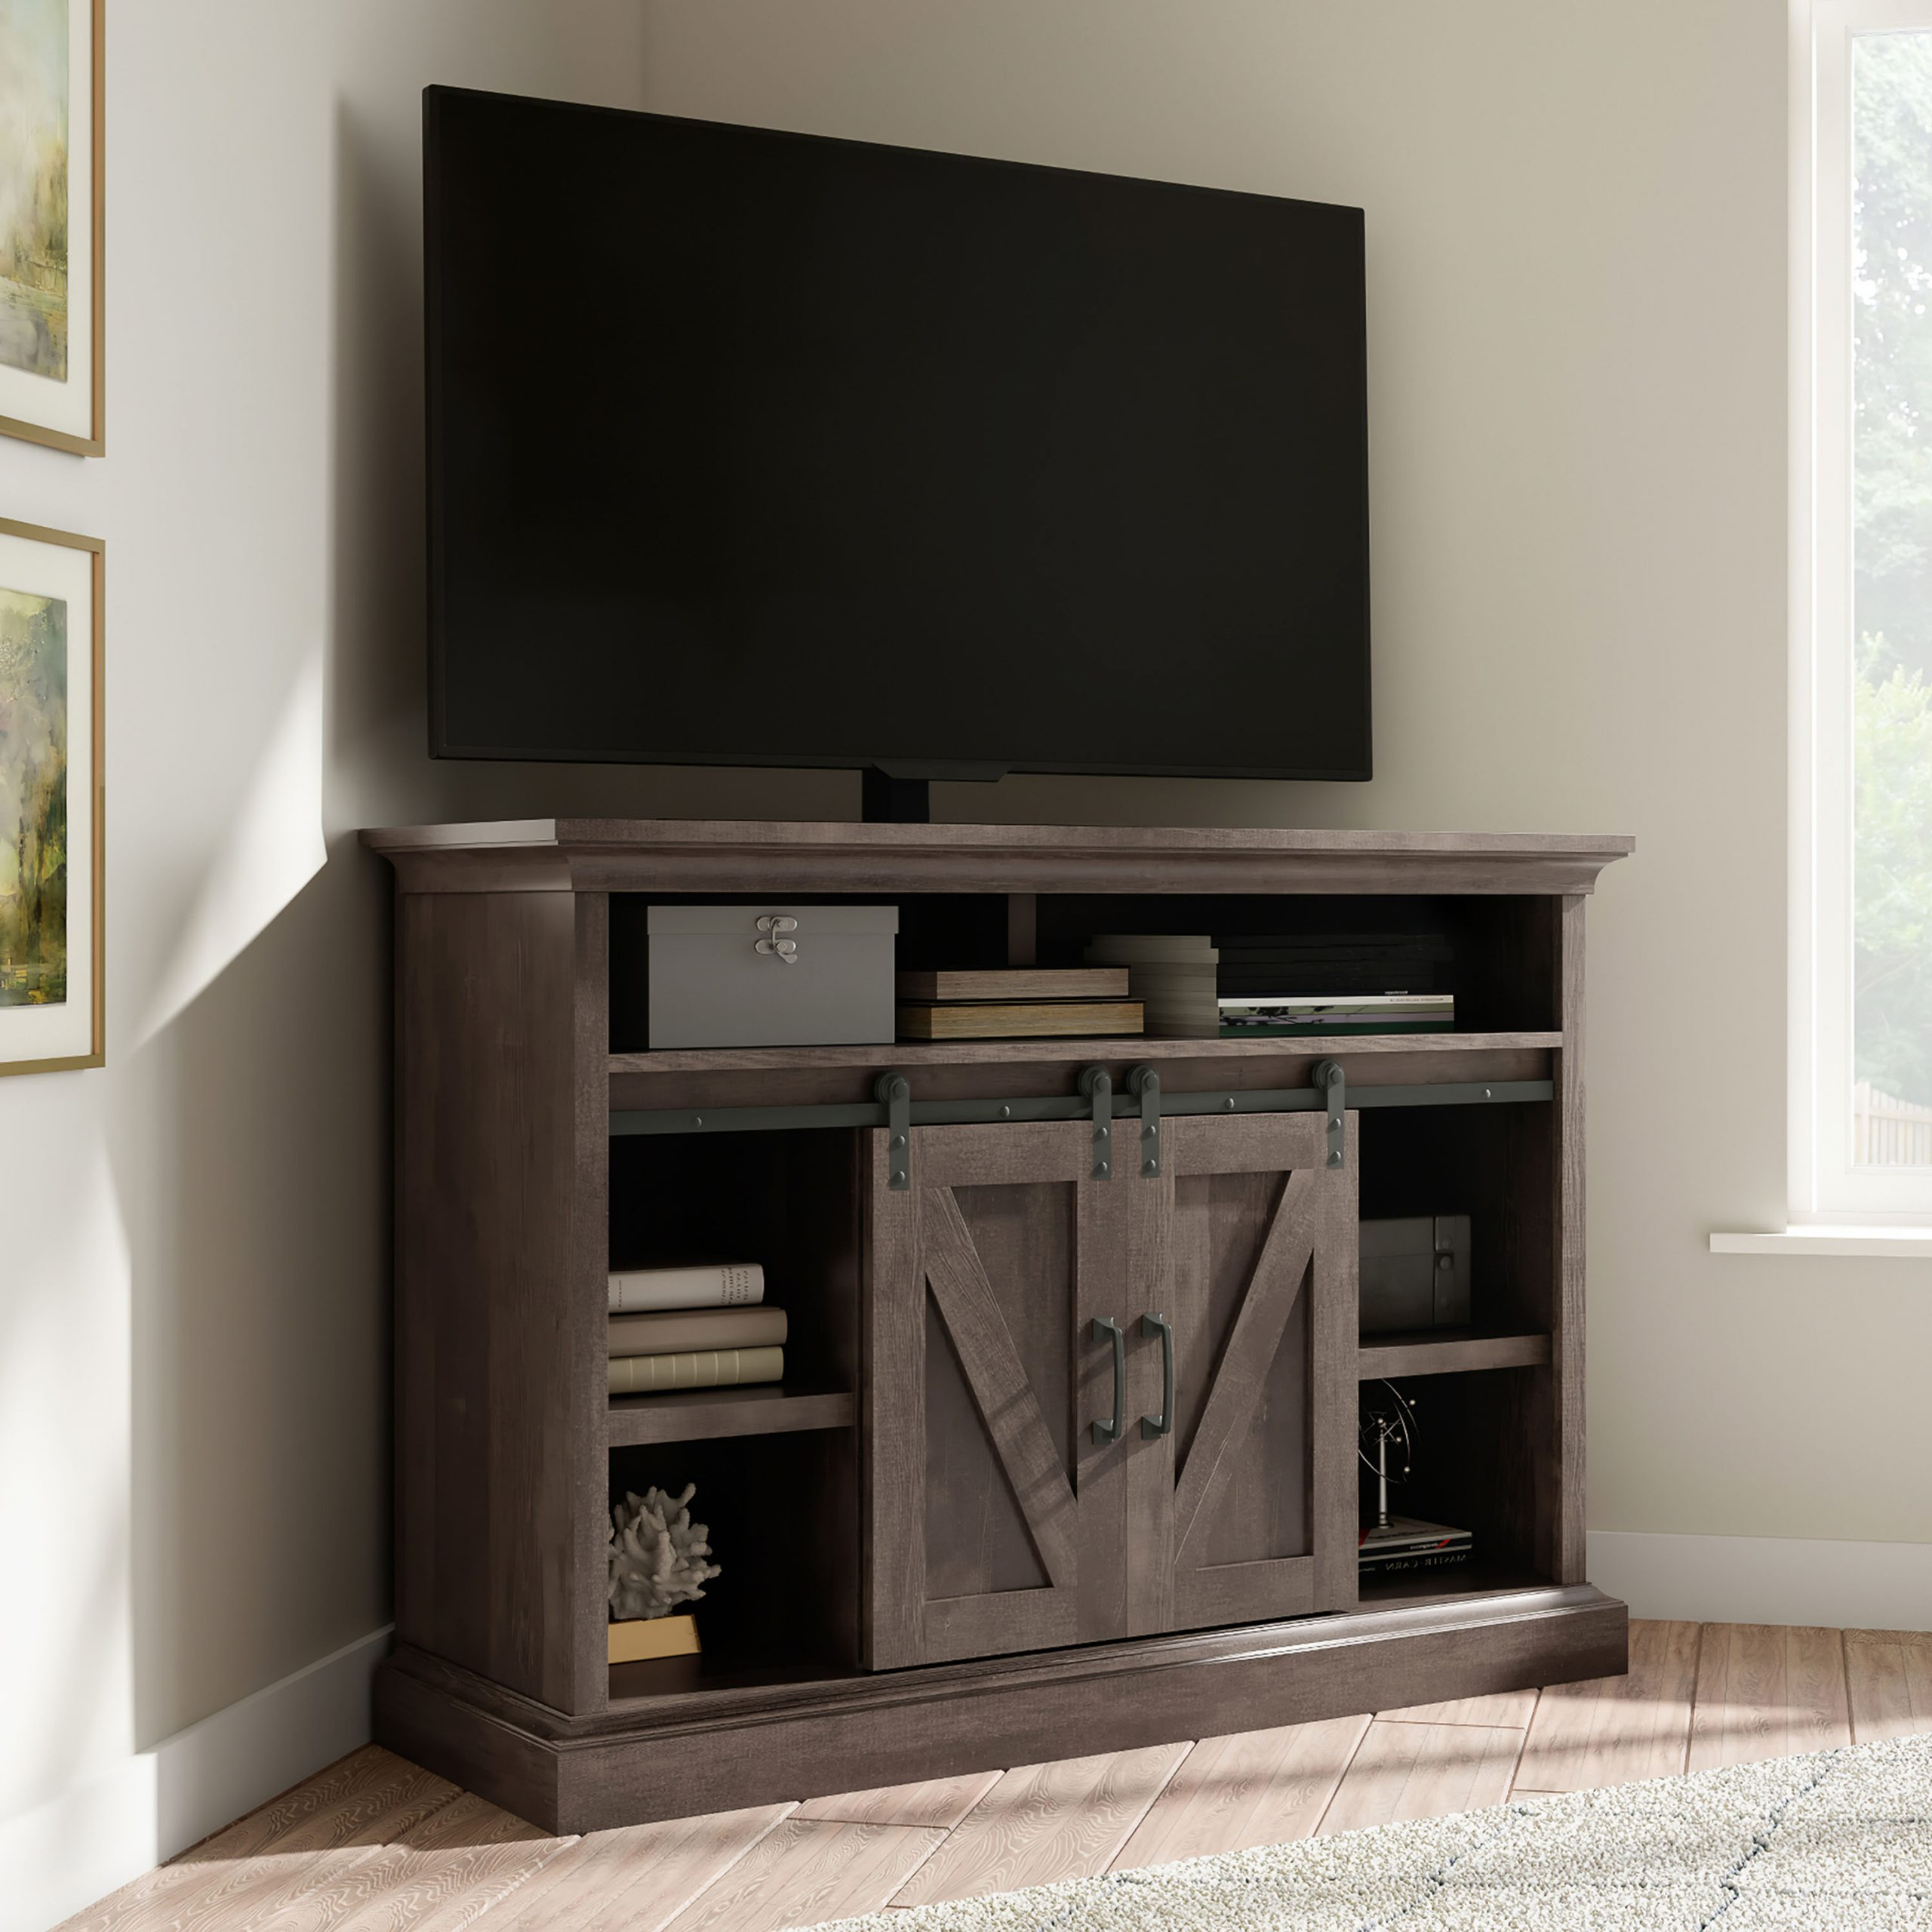 """Farmhouse Sliding Barn Door Tv Stands For 70 Inch Flat Screen Inside Most Current Whalen Allston Barn Door Corner Tv Stand For 55"""" Tvs (View 4 of 10)"""